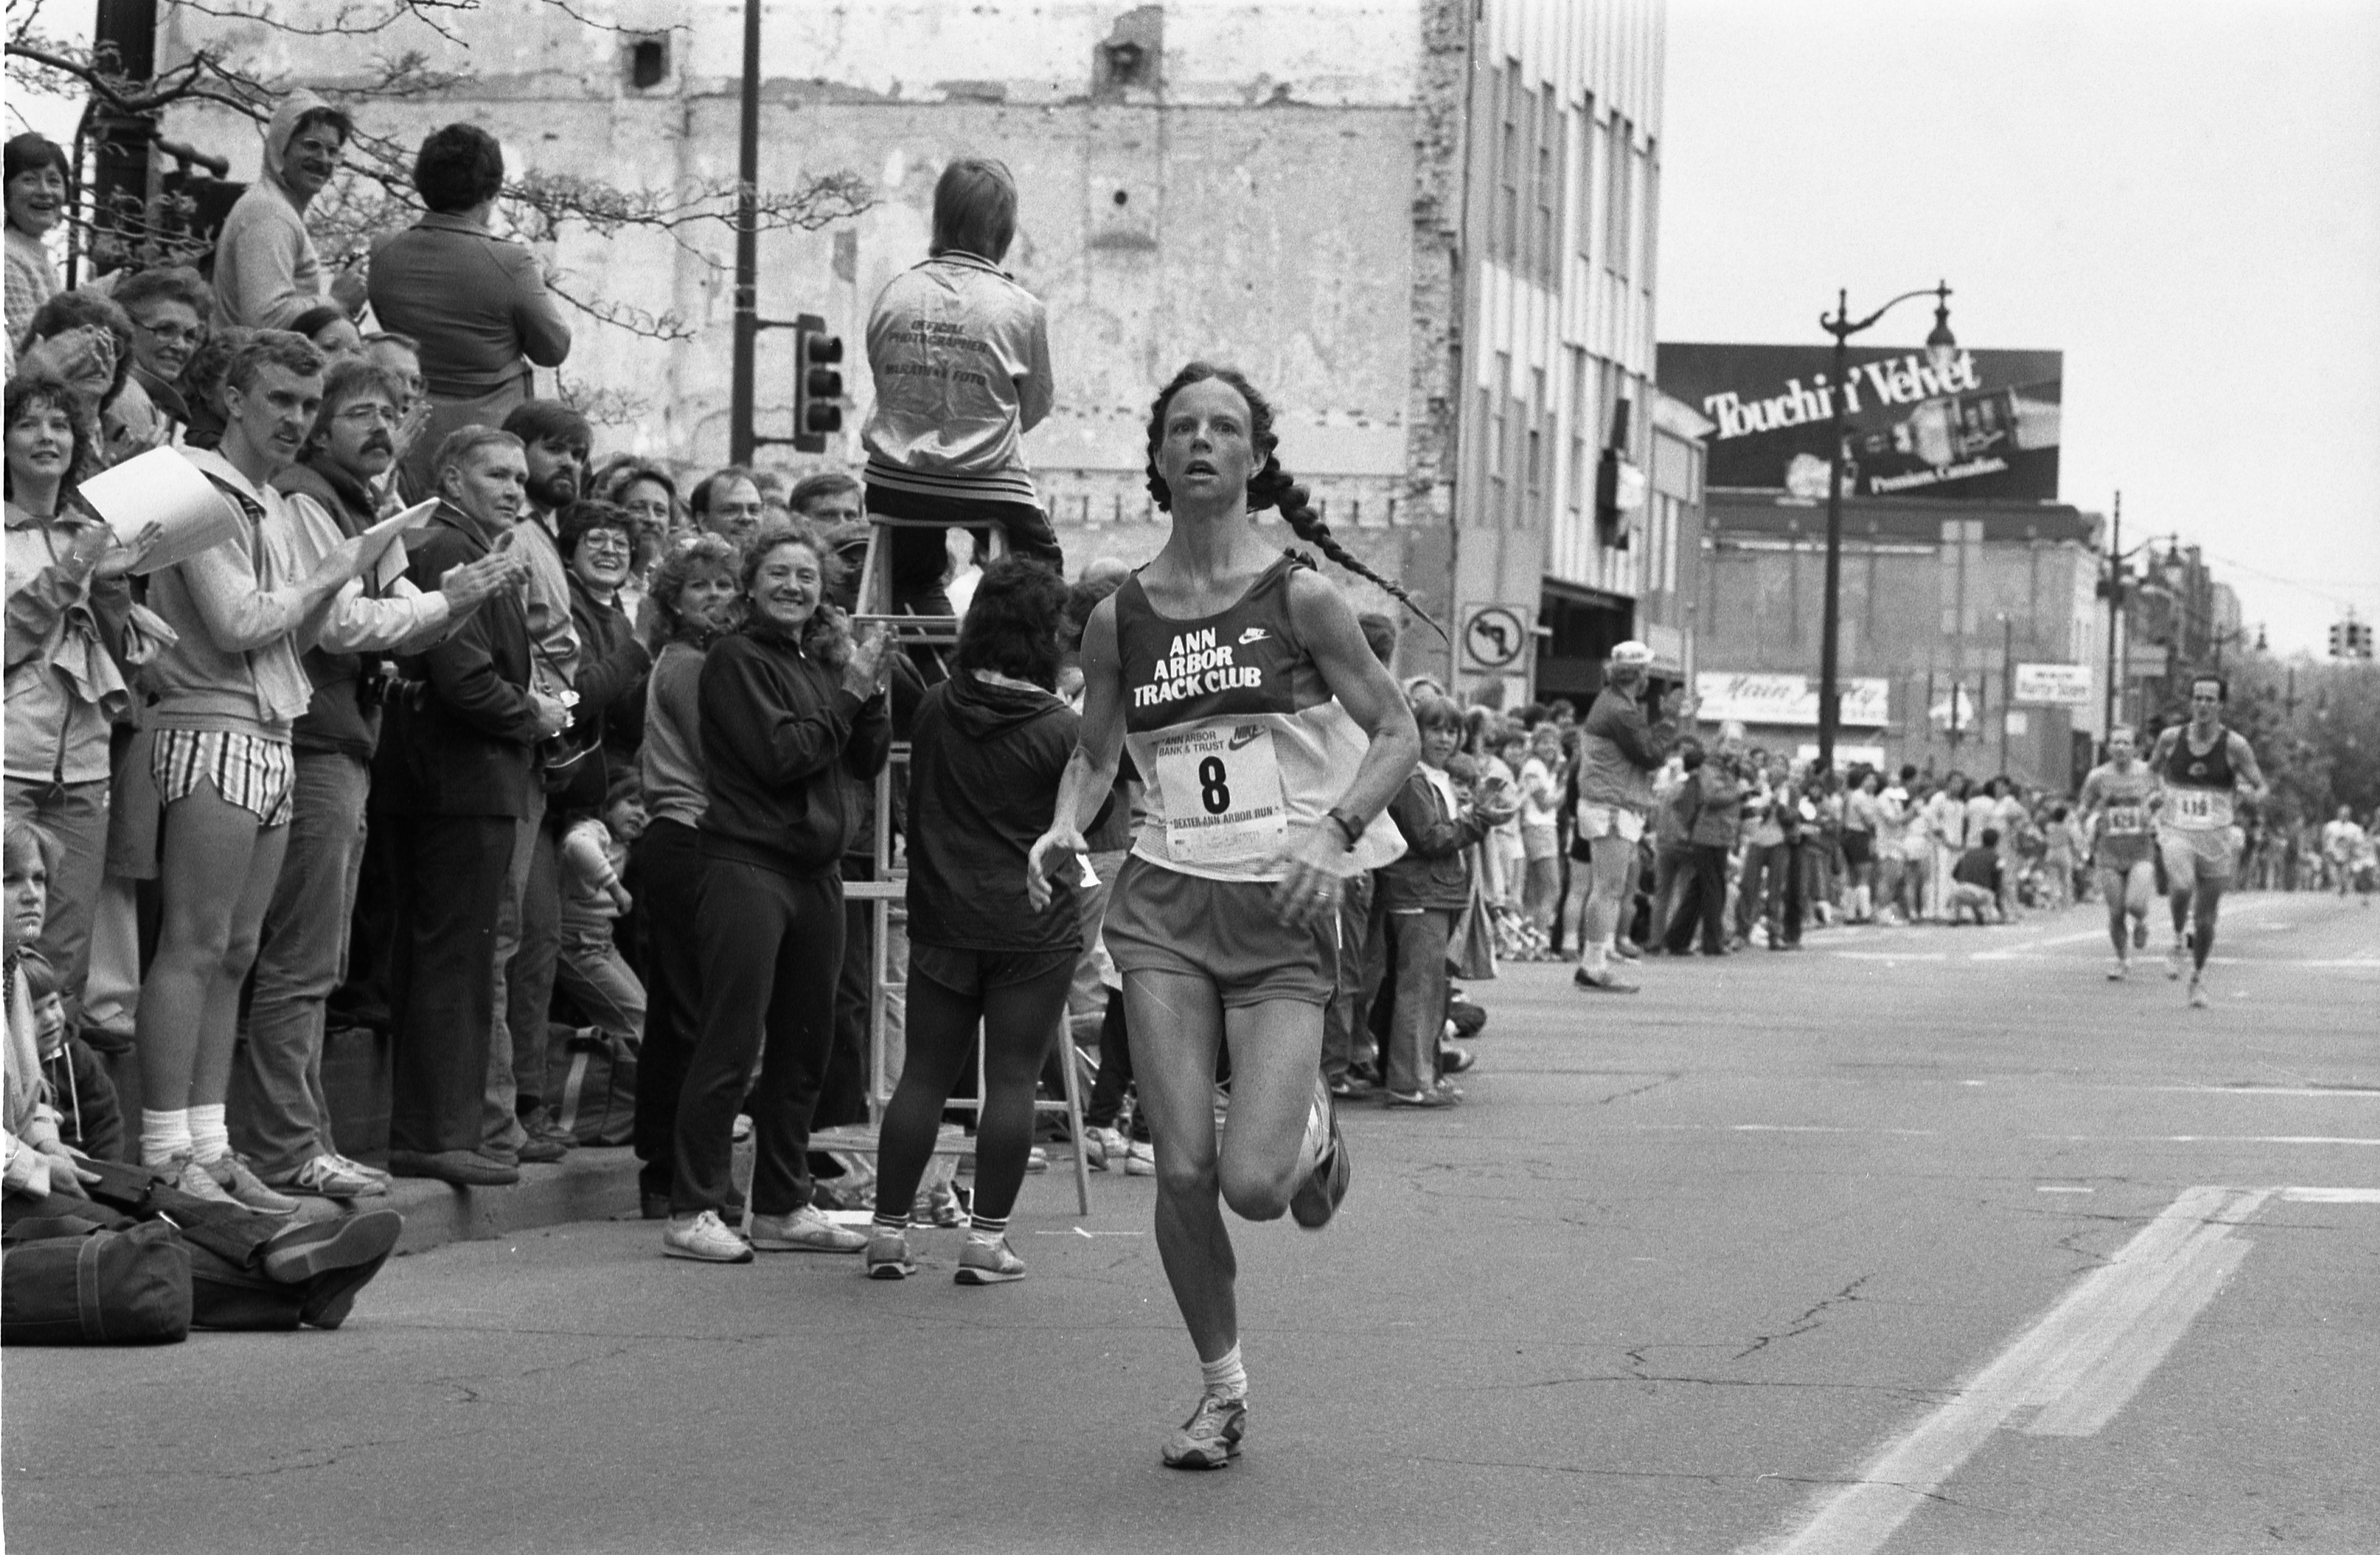 Carol Gephart Wins 13.1 Mile Race In The Dexter-Ann Arbor Run, May 29, 1983 image